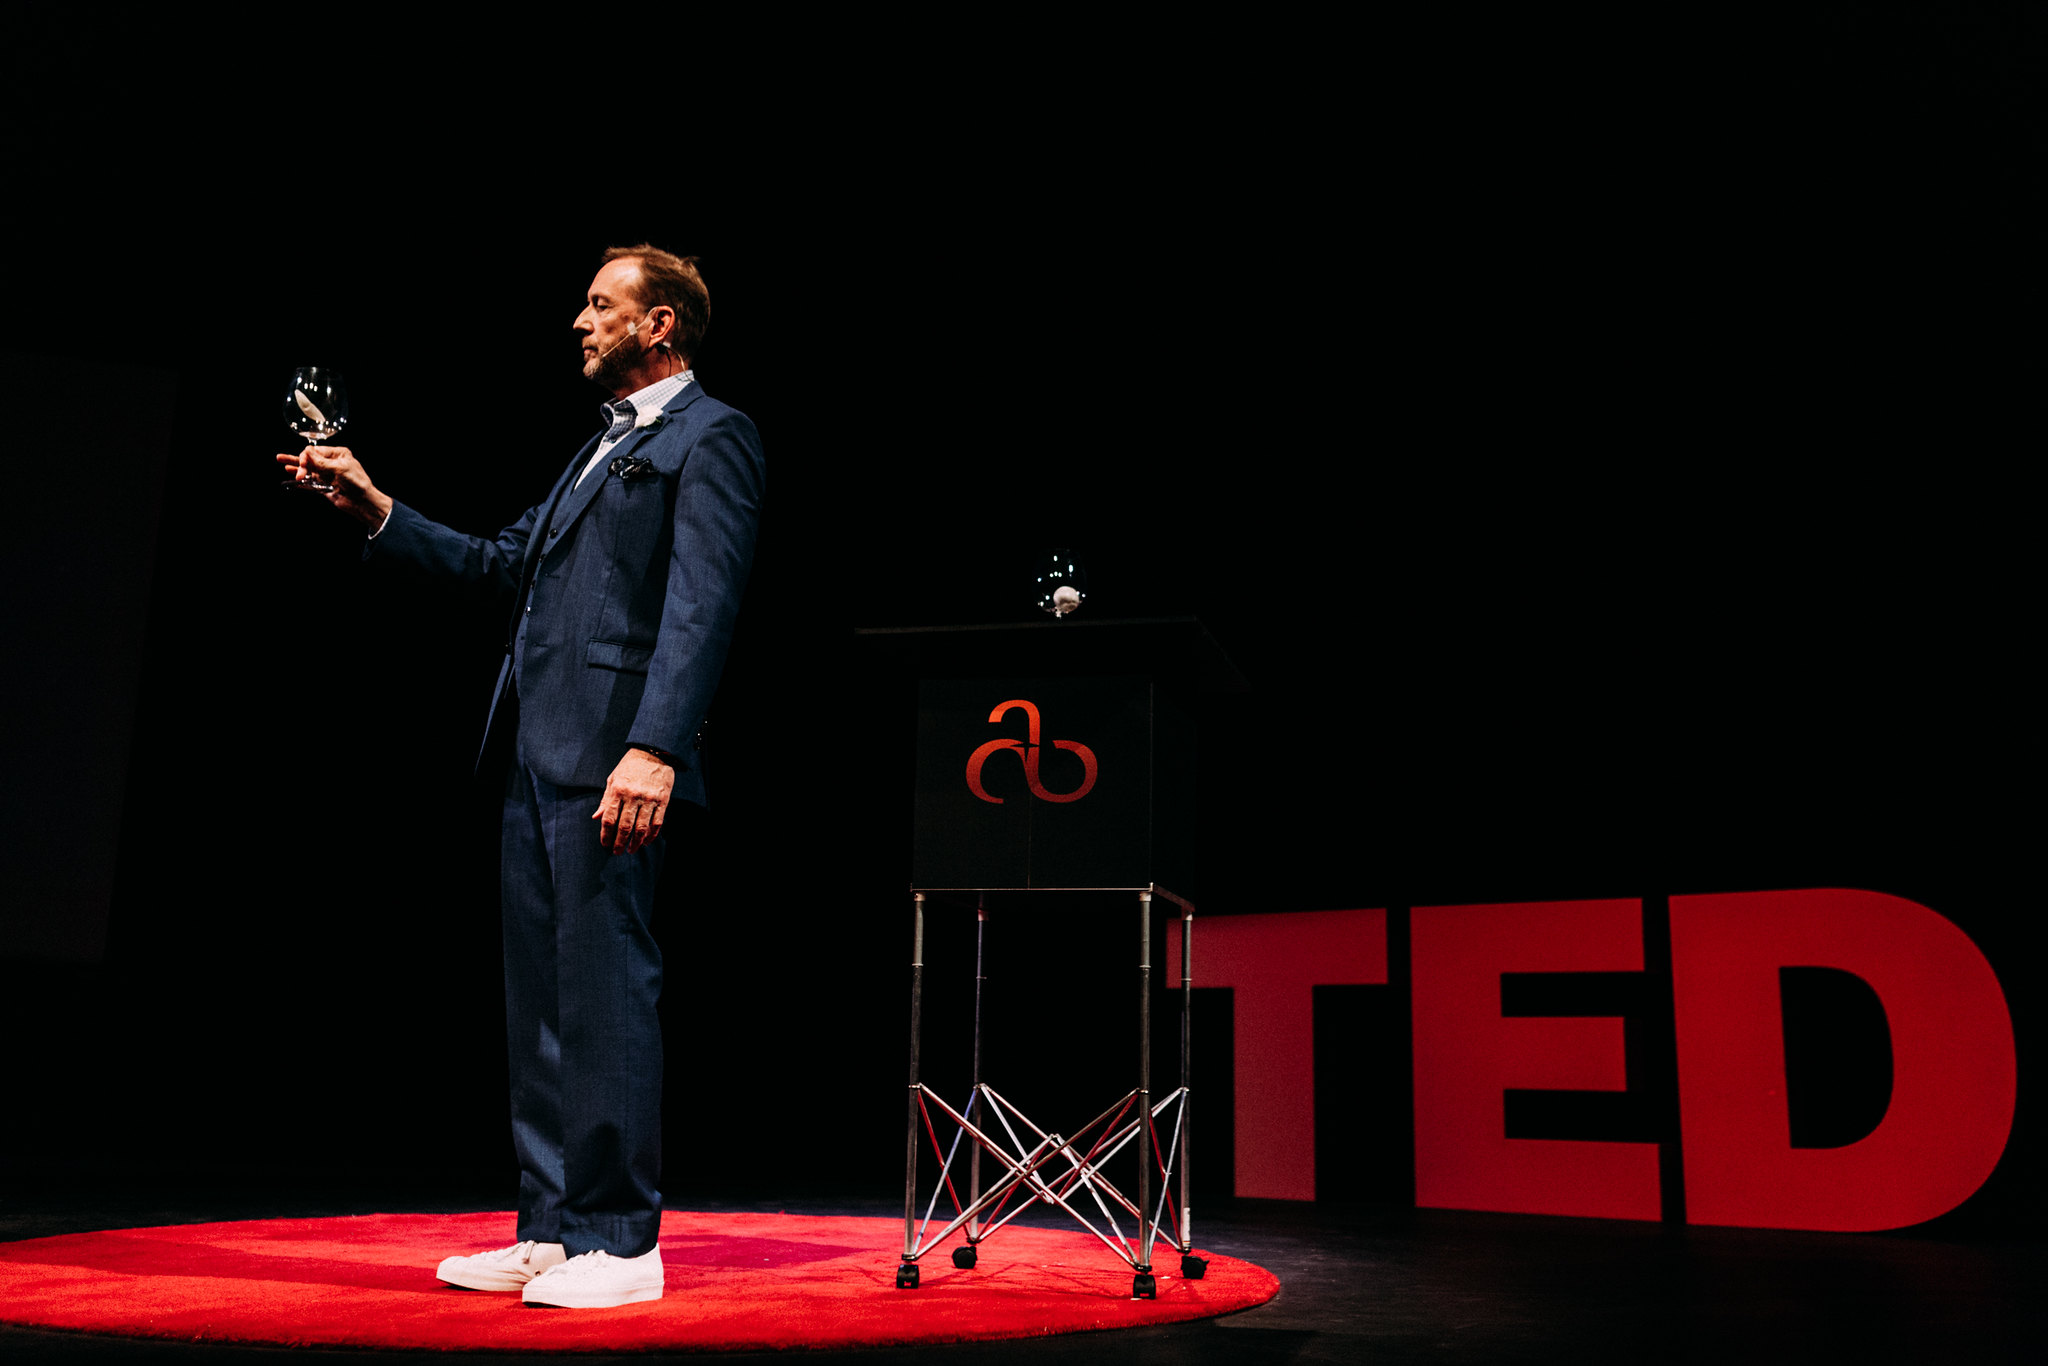 TEDx images-84